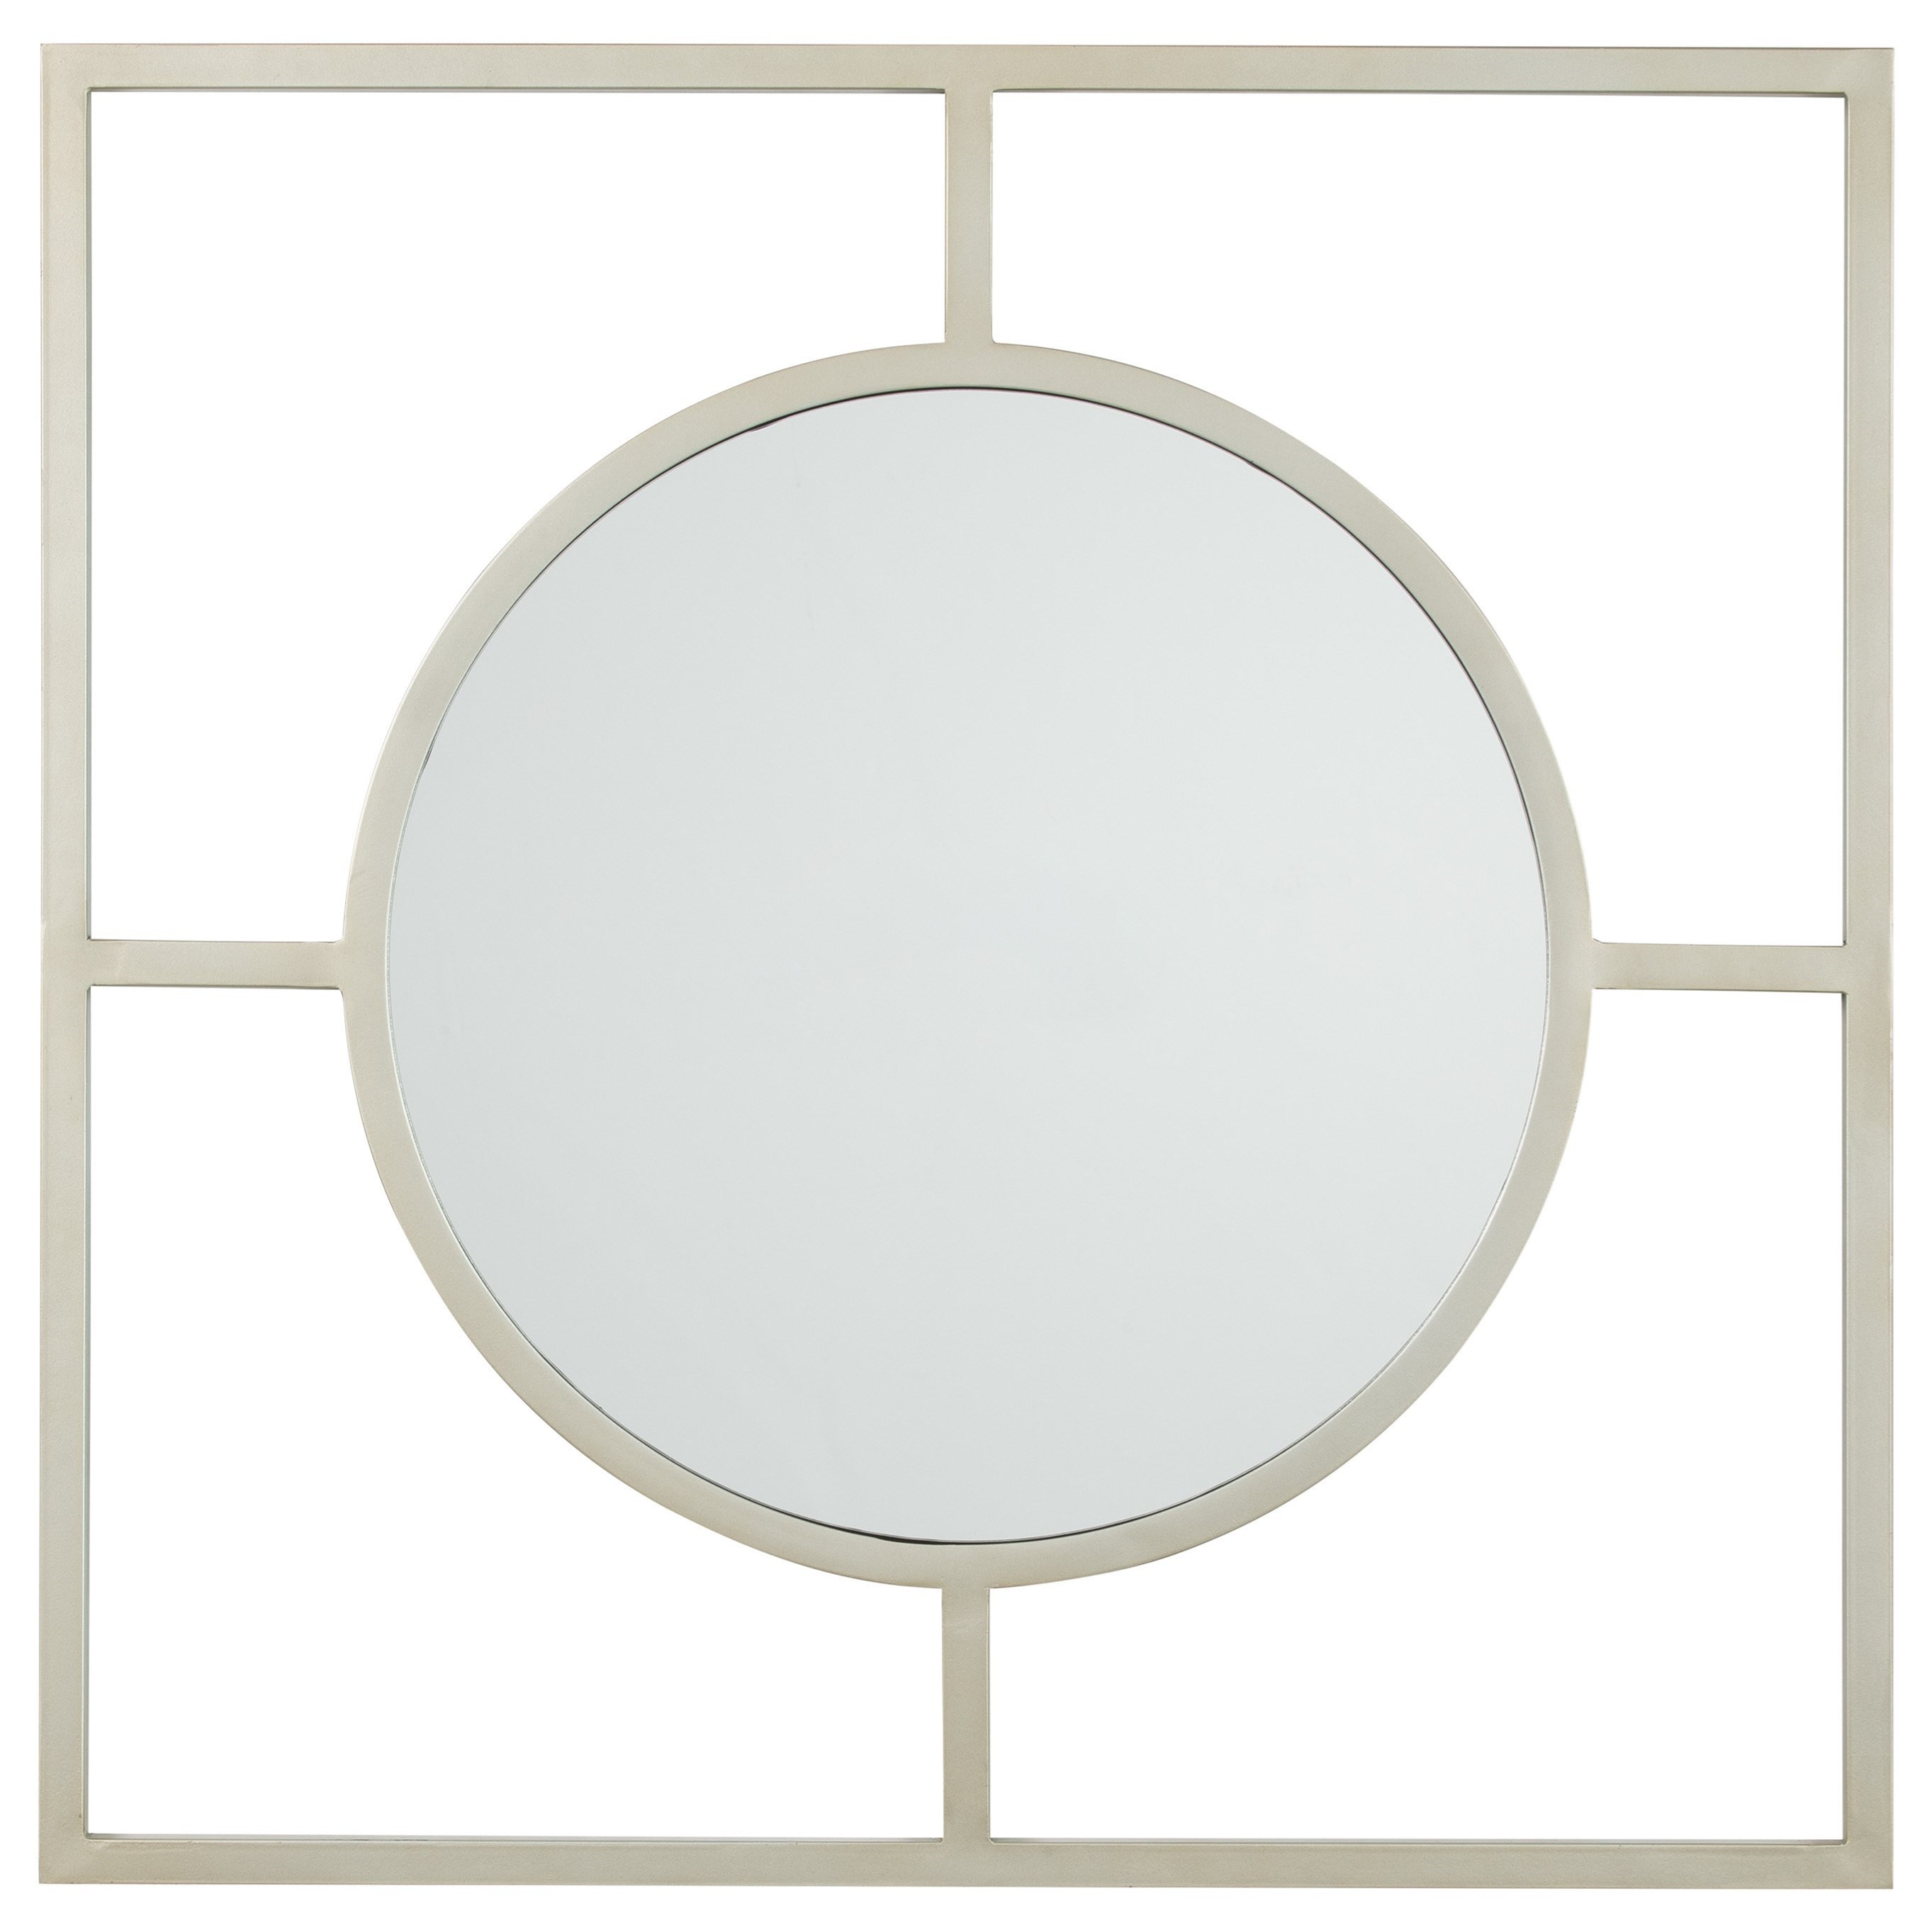 Signature Design by Ashley Accent Mirrors Druce Champagne Finish Accent Mirror - Item Number: A8010067